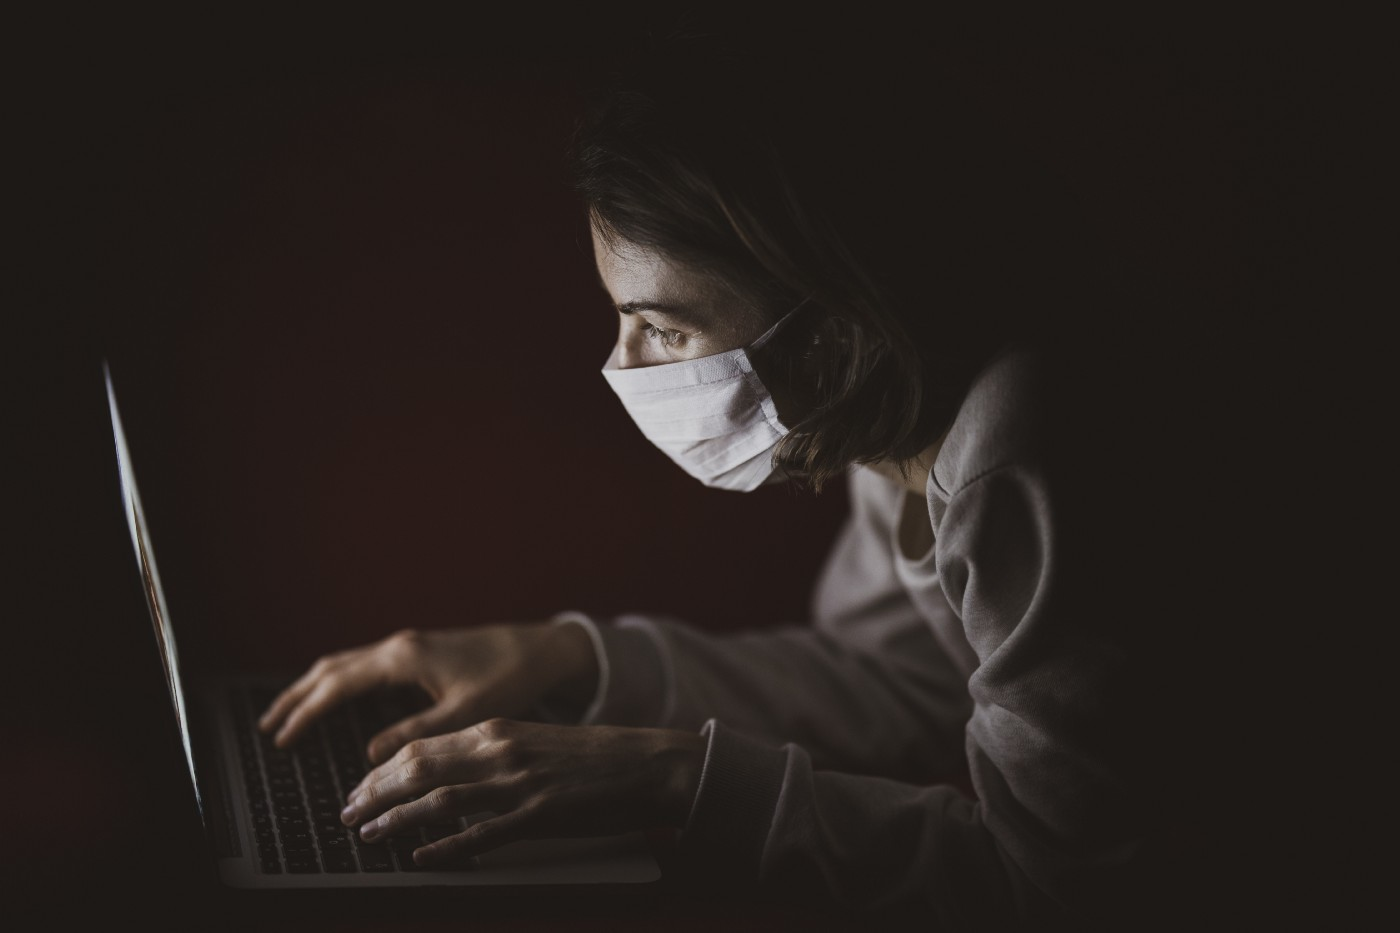 A woman wearing a mask typing on a laptop in the dark